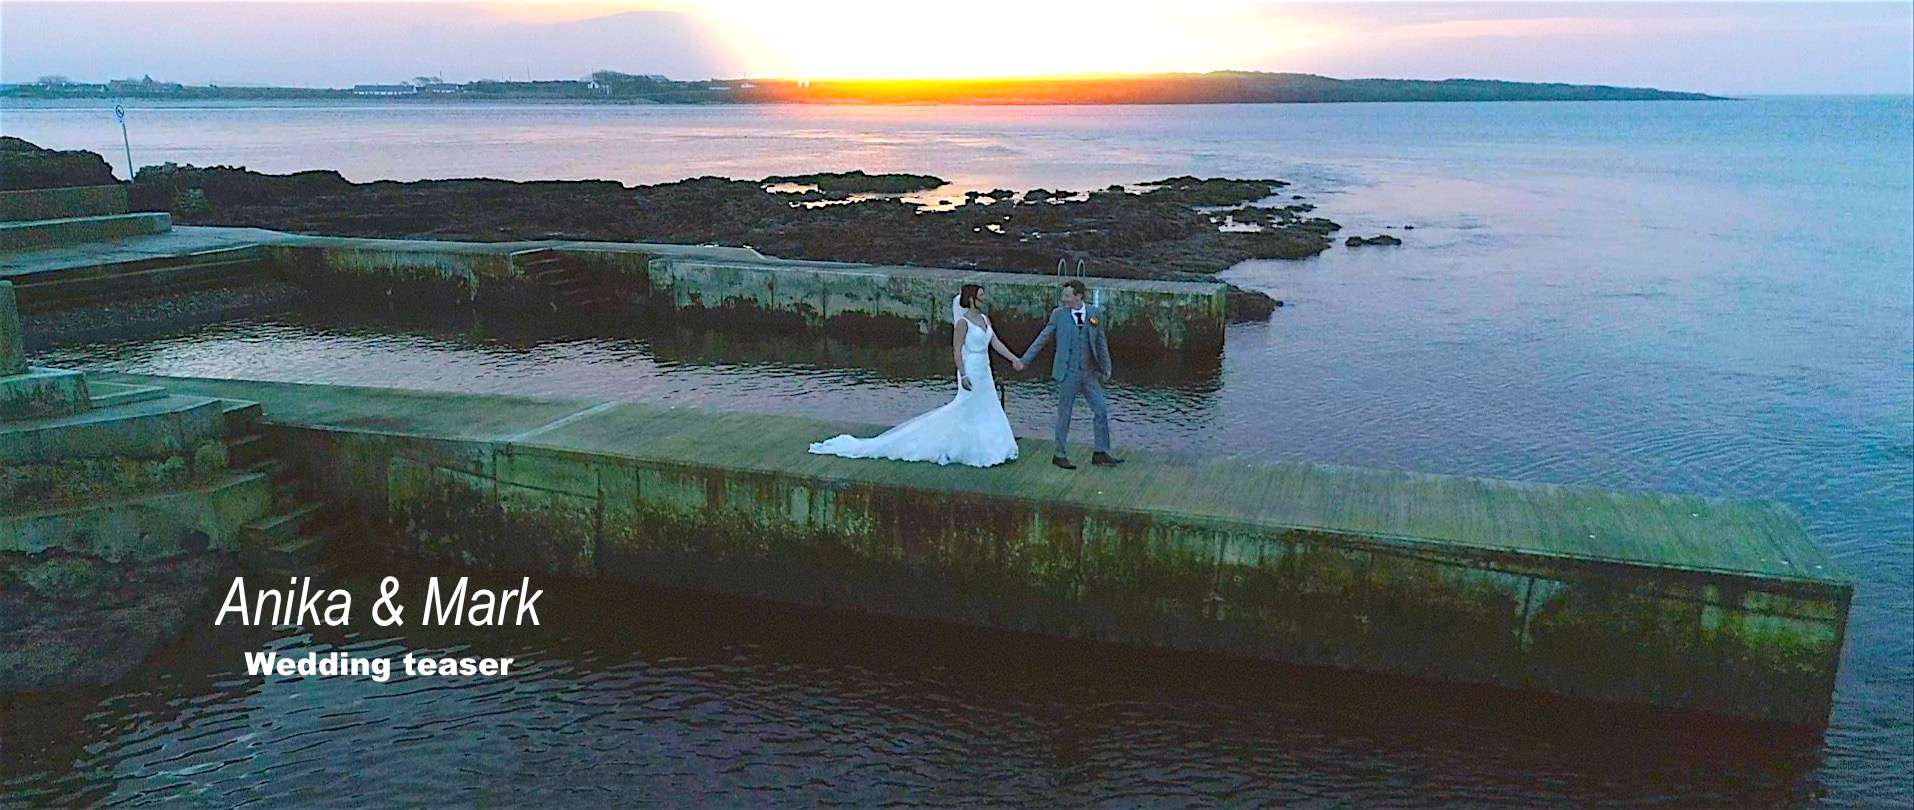 Wedding videographer Radisson Sligo